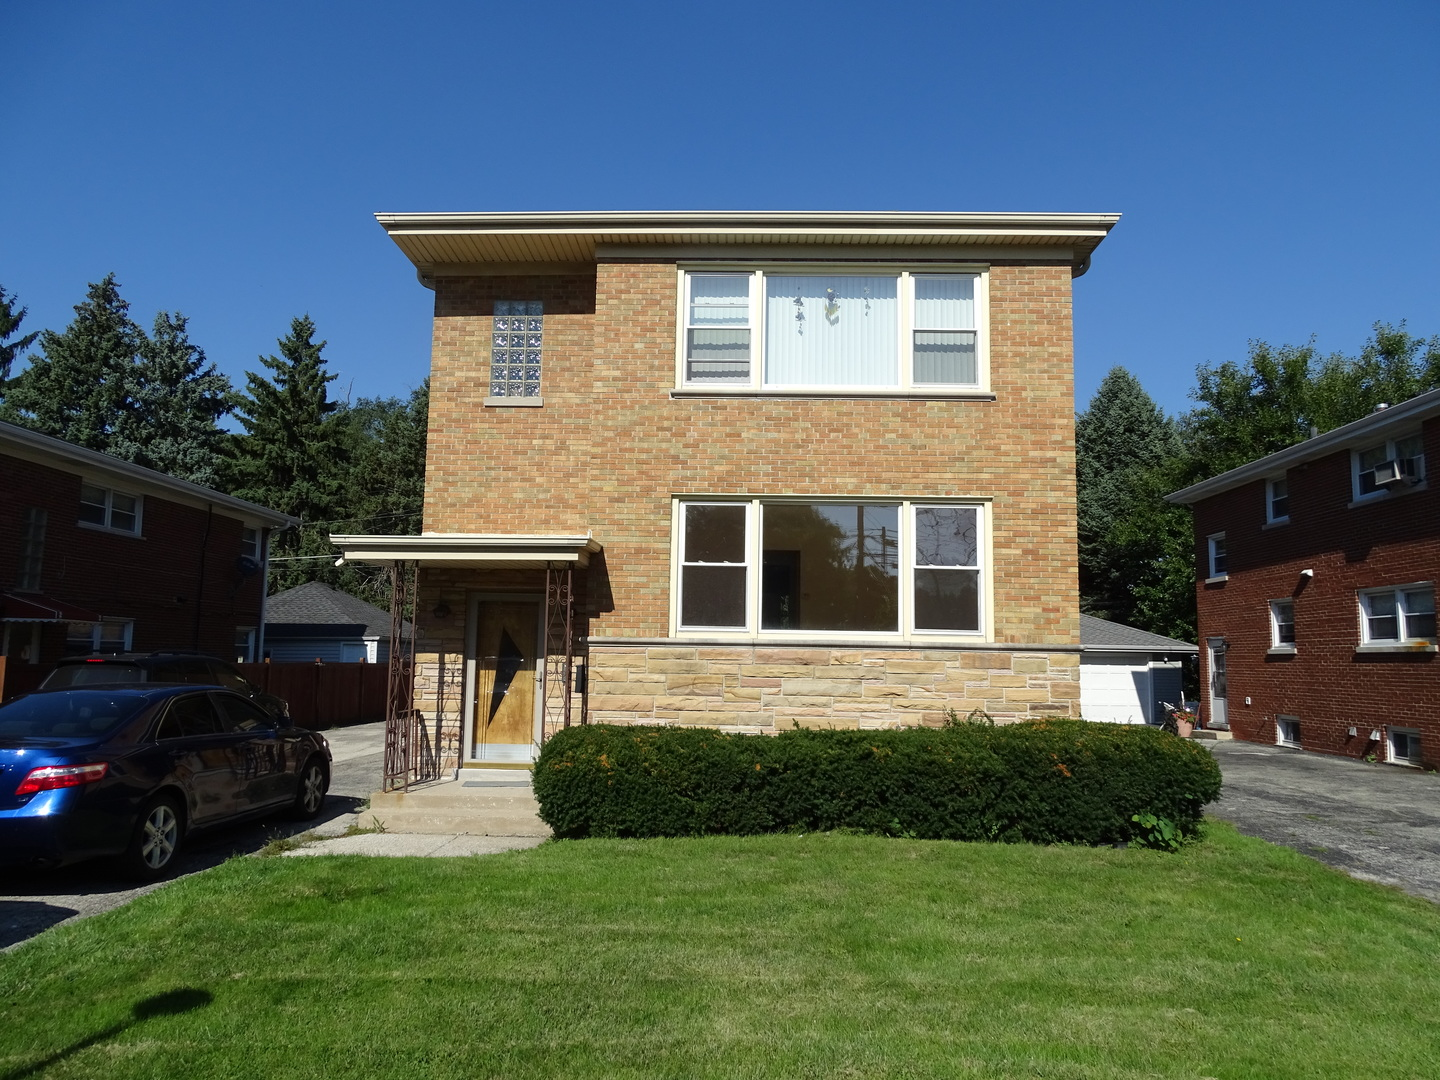 1243 Northwest ,Park Ridge, Illinois 60068